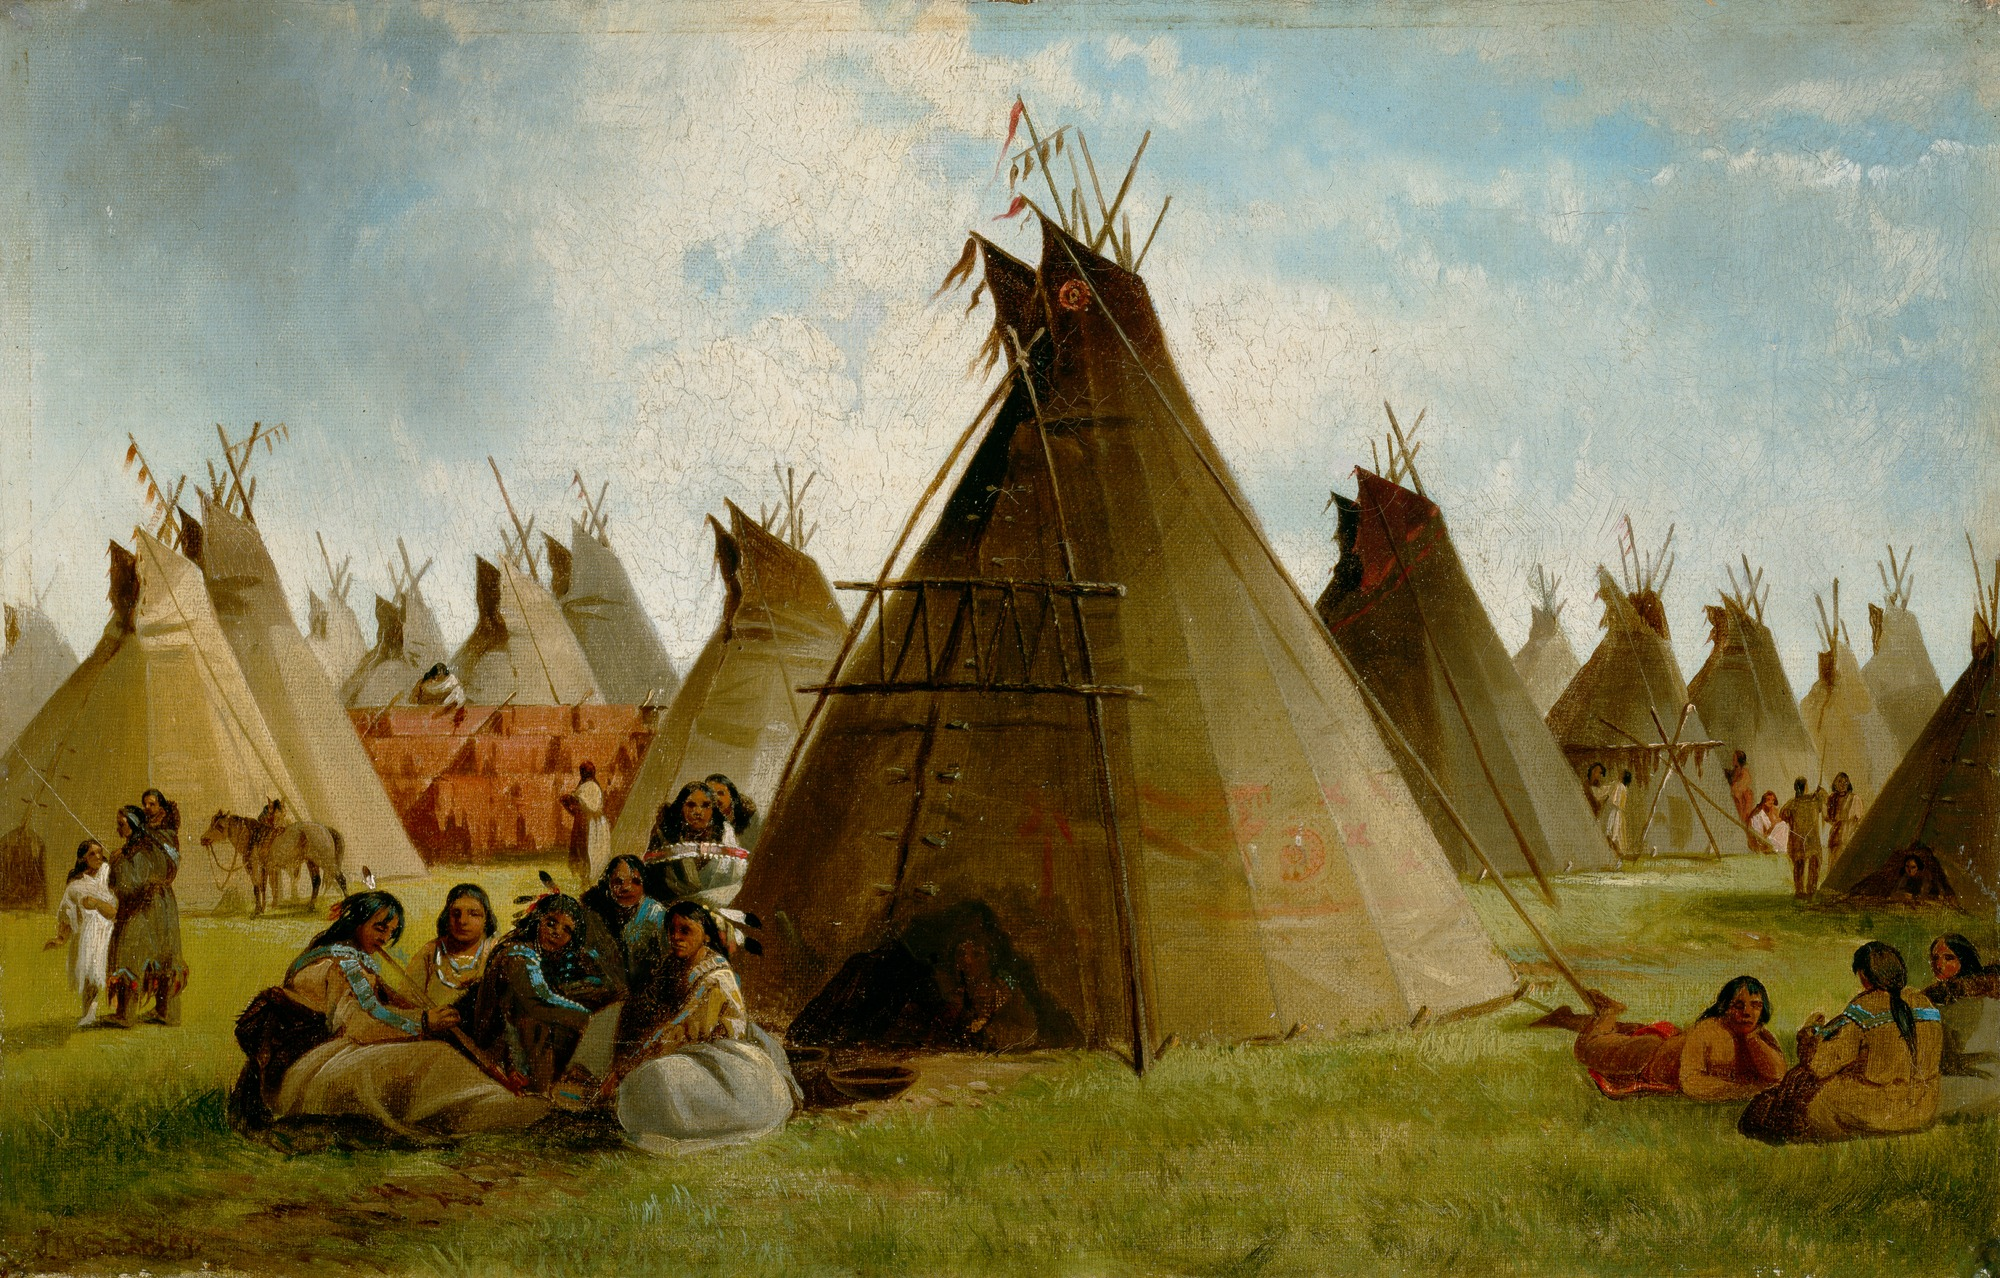 file john mix stanley prairie indian encampment jpg wikimedia commons indian clip art black and white indiana clipart free